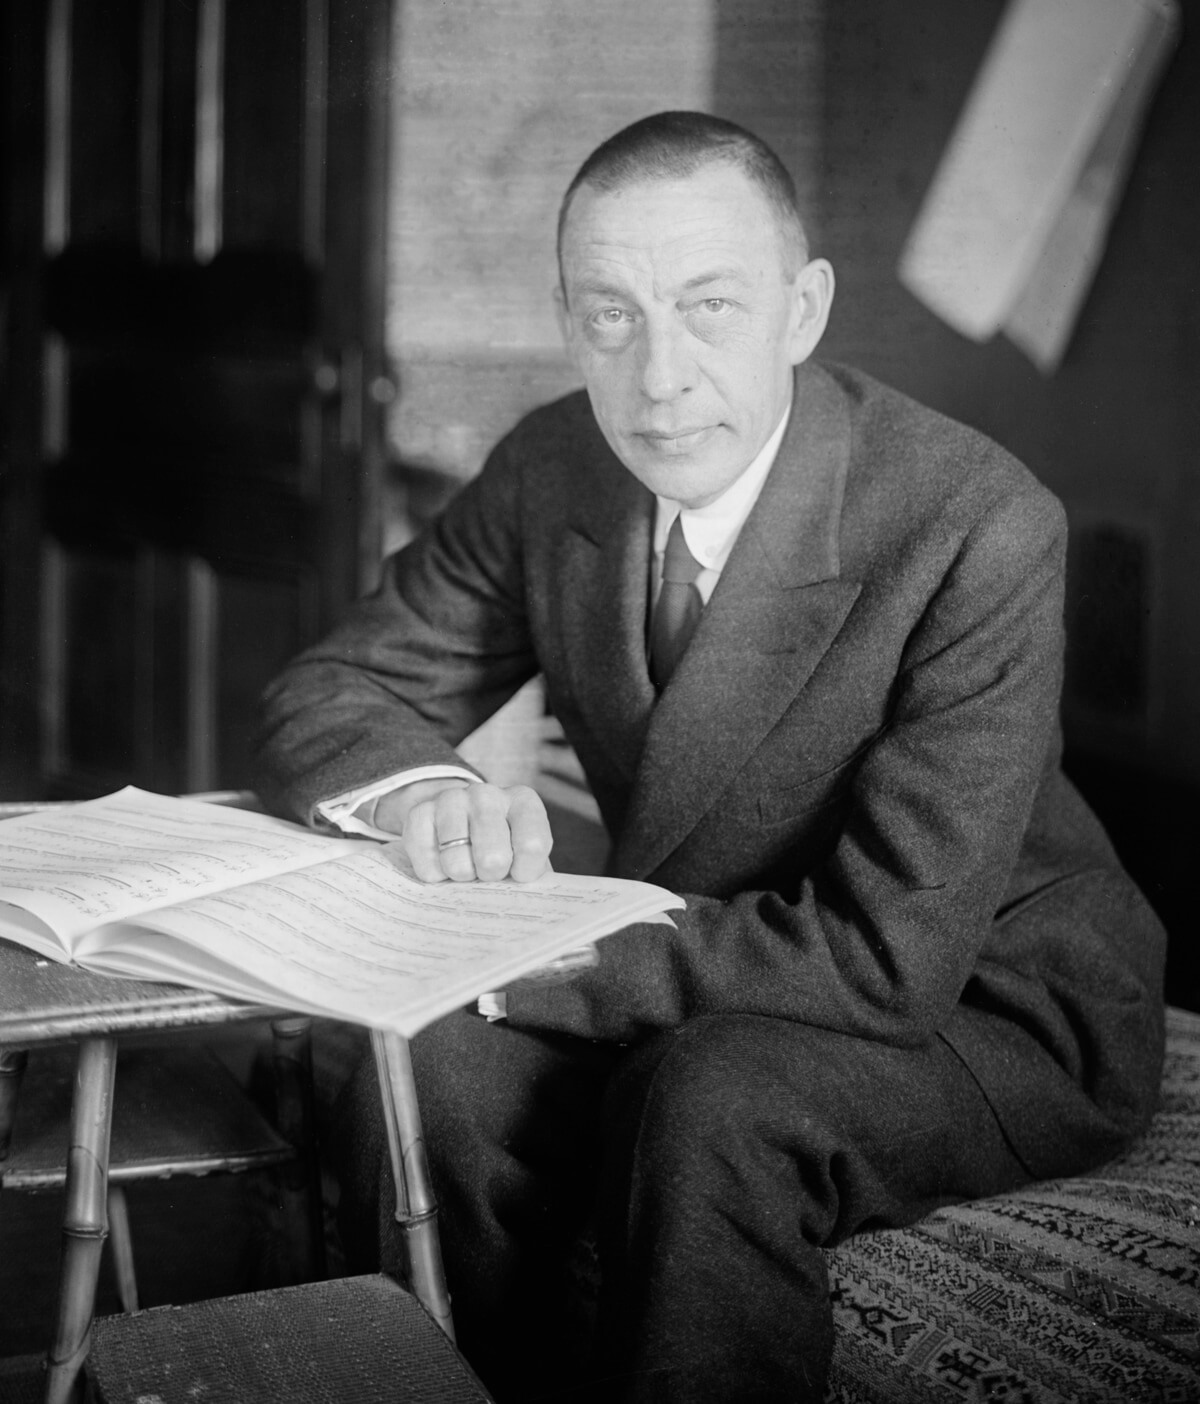 Rachmaninoff, seated (Public domain image)